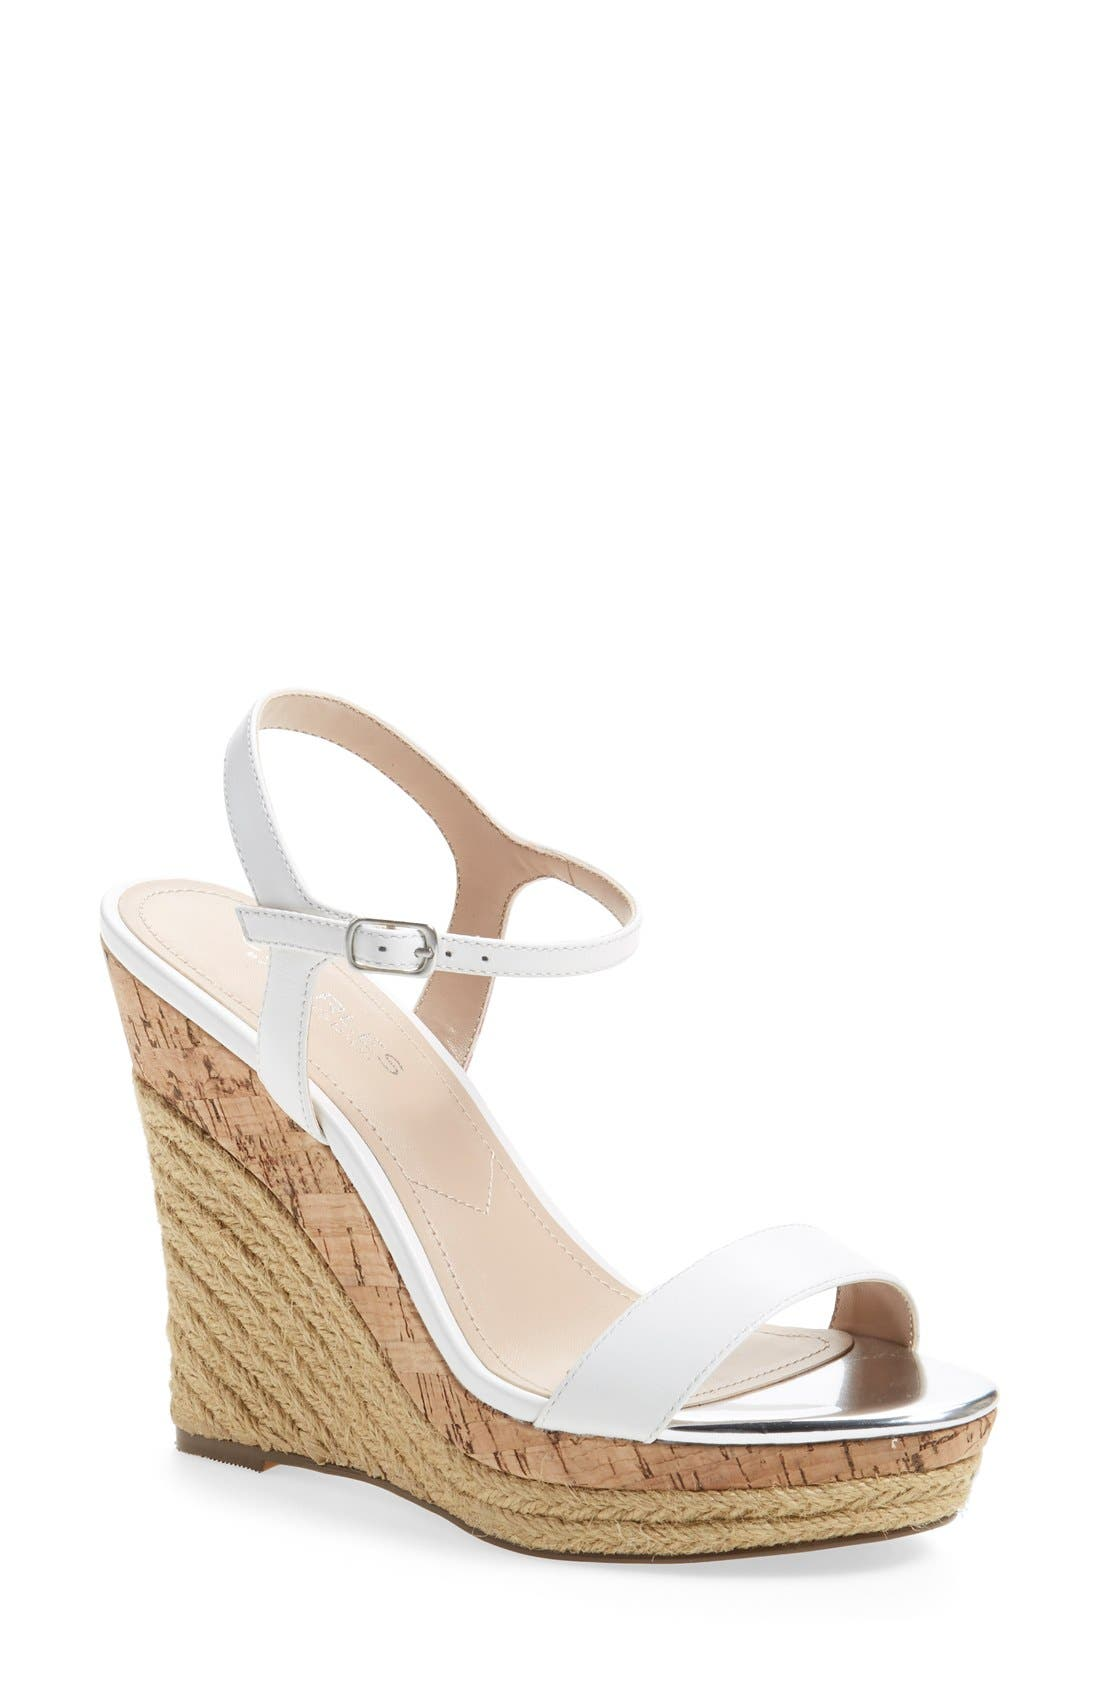 Main Image - Charles by Charles David 'Arizona' Espadrille Wedge (Women)